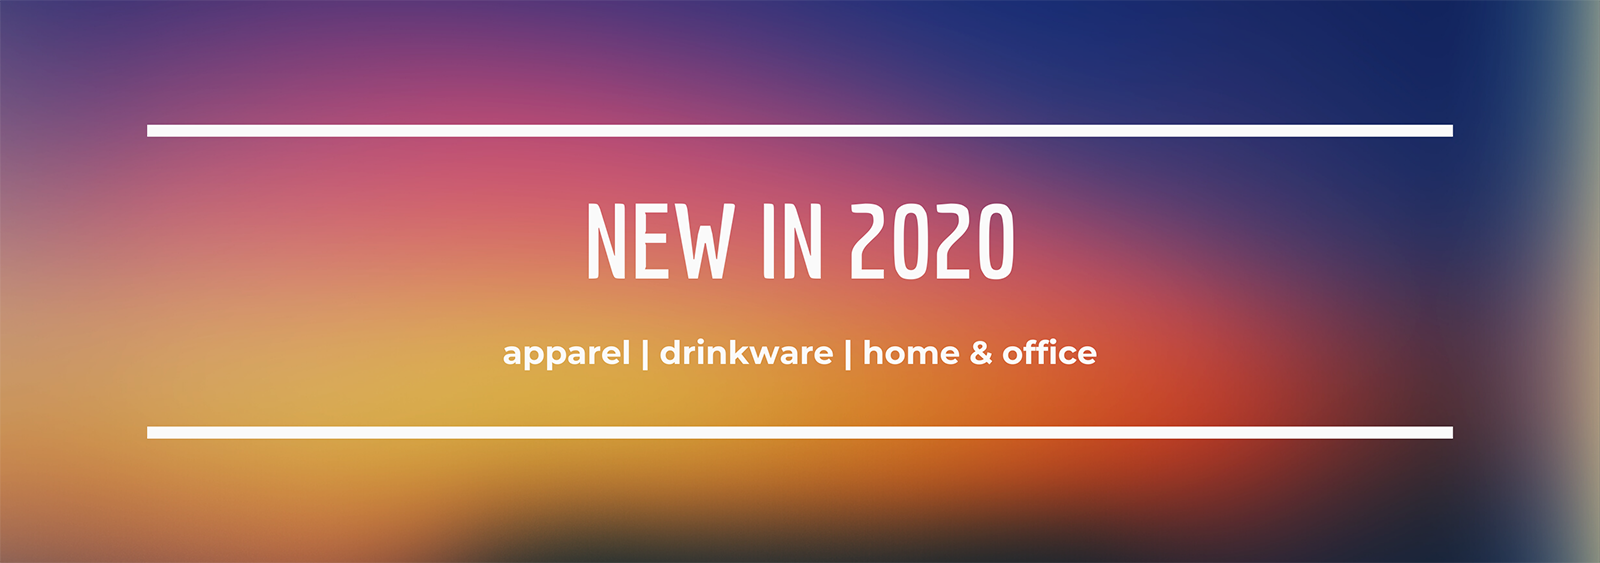 New in 2020: Apparel | Drinkware | Home & Office